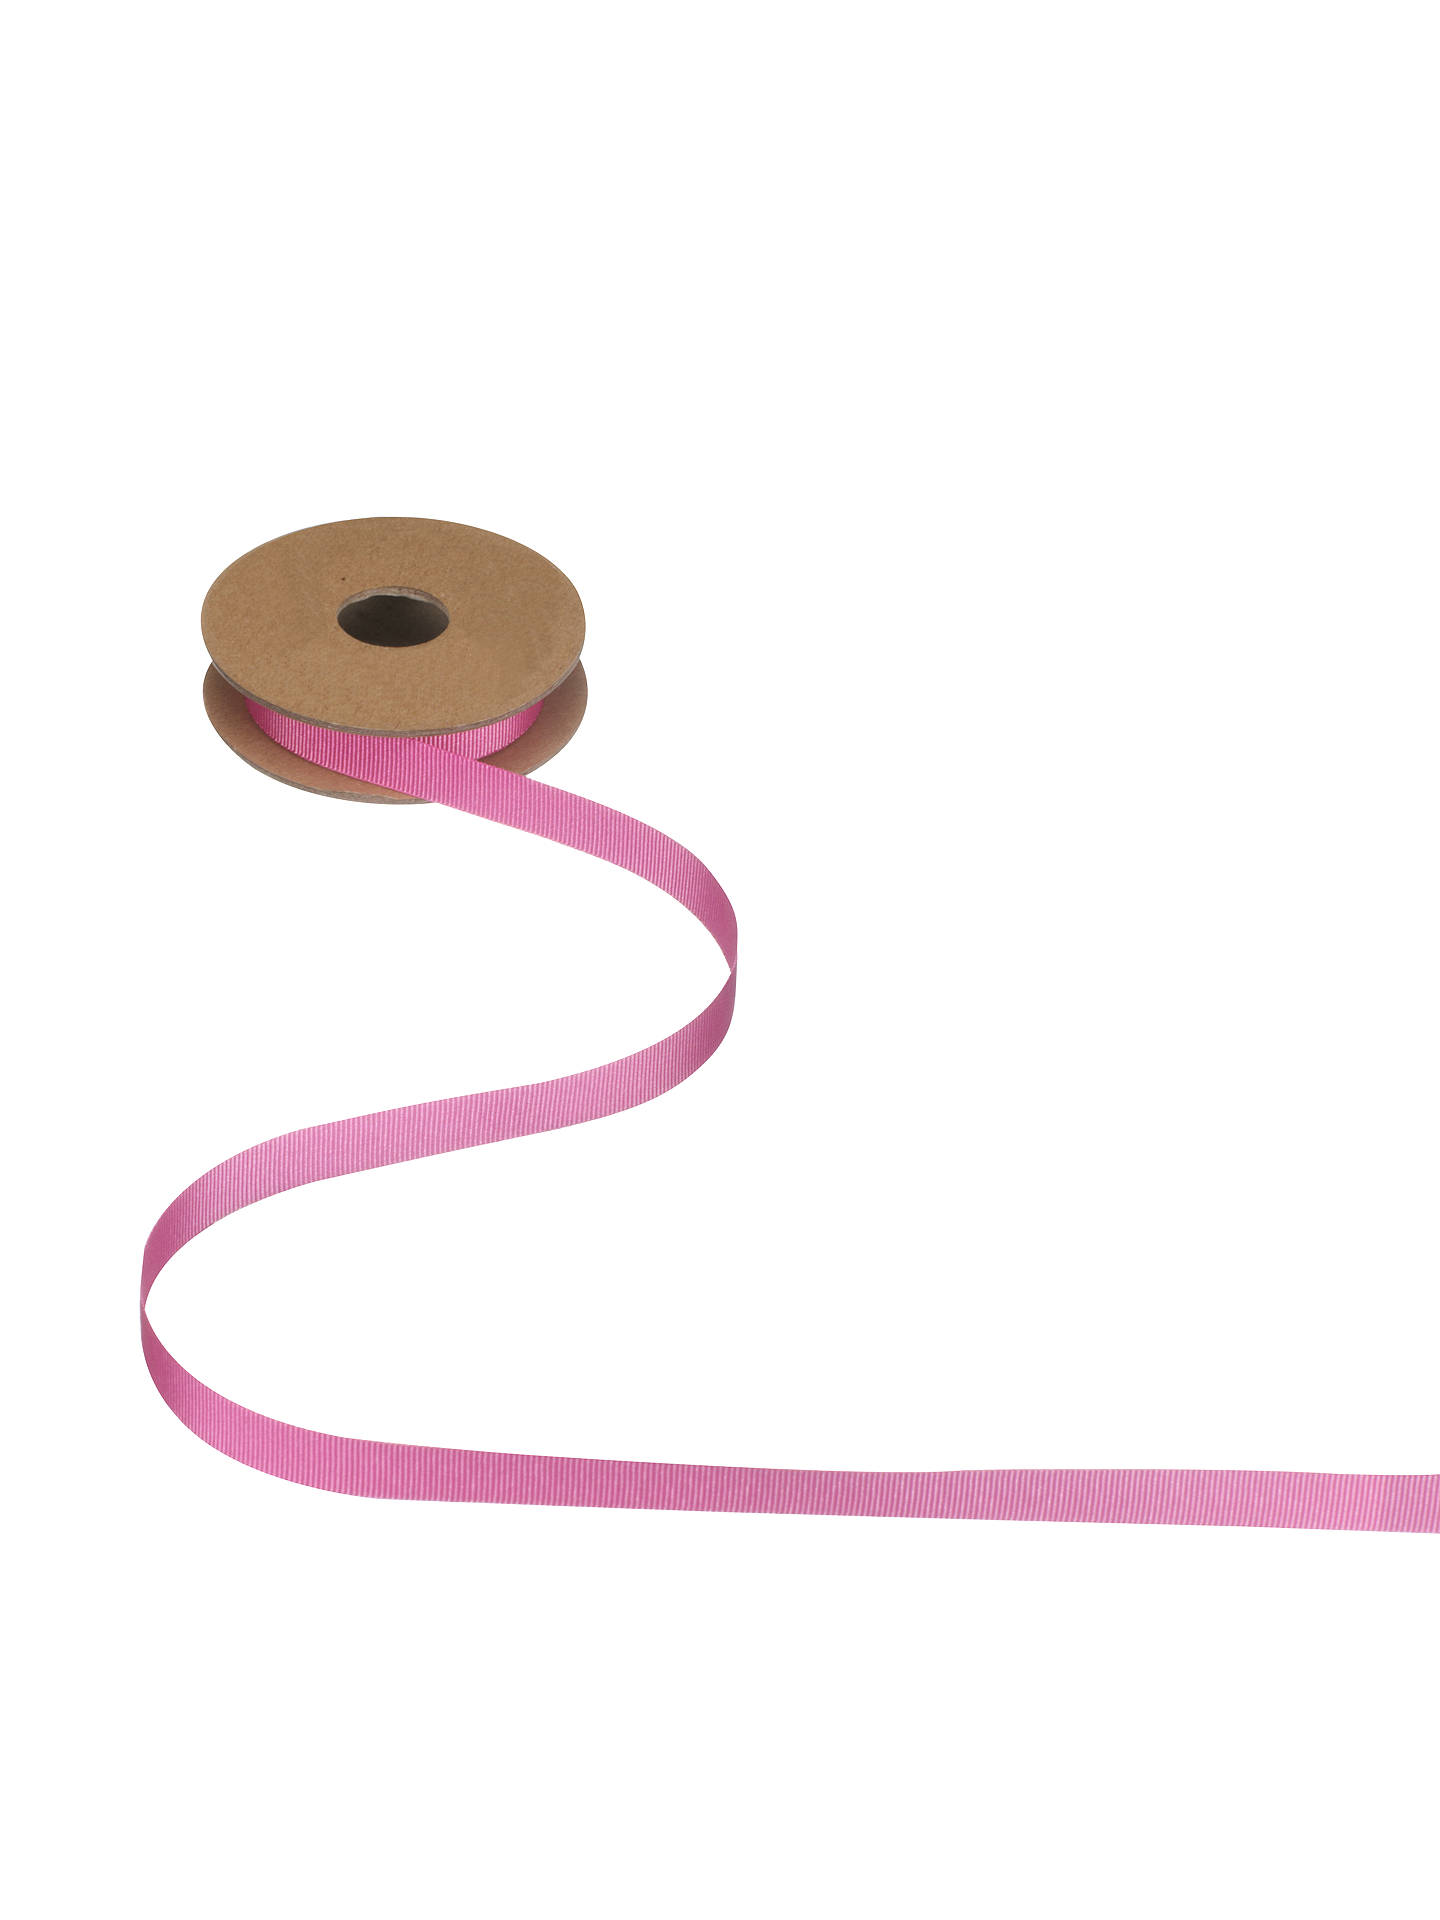 Buy John Lewis Grosgrain Ribbon, 5m, Fuchsia, 10mm Online at johnlewis.com